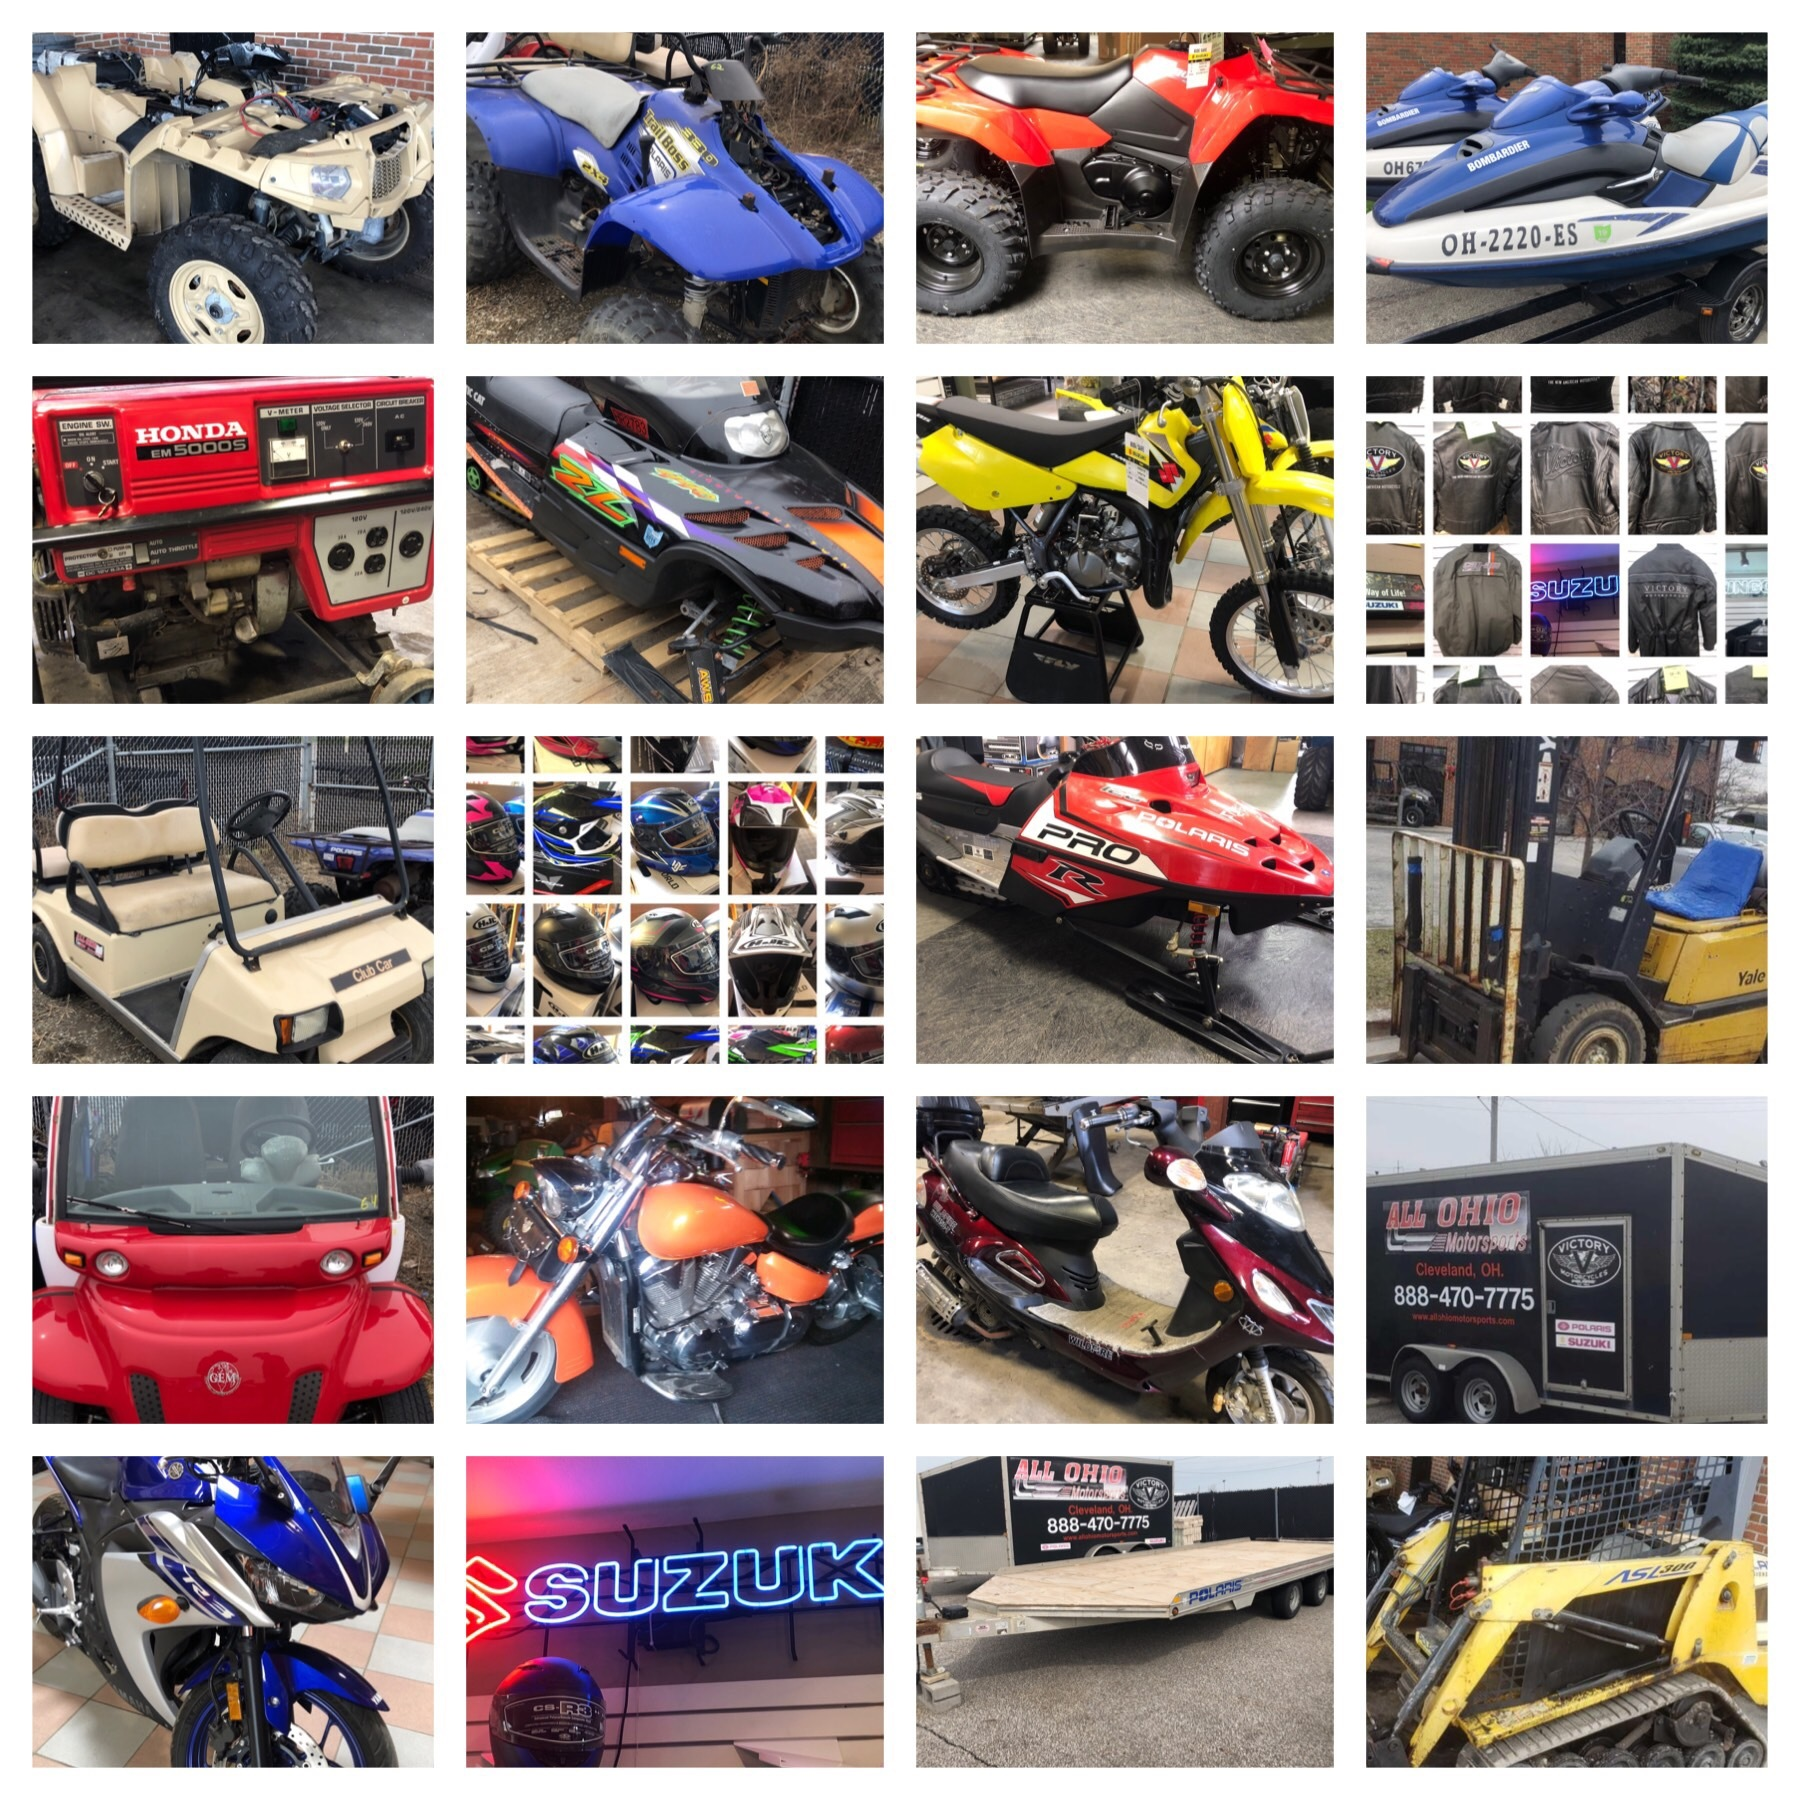 All Ohio Motorsport Inventory Reduction Buddy Barton Auctioneer